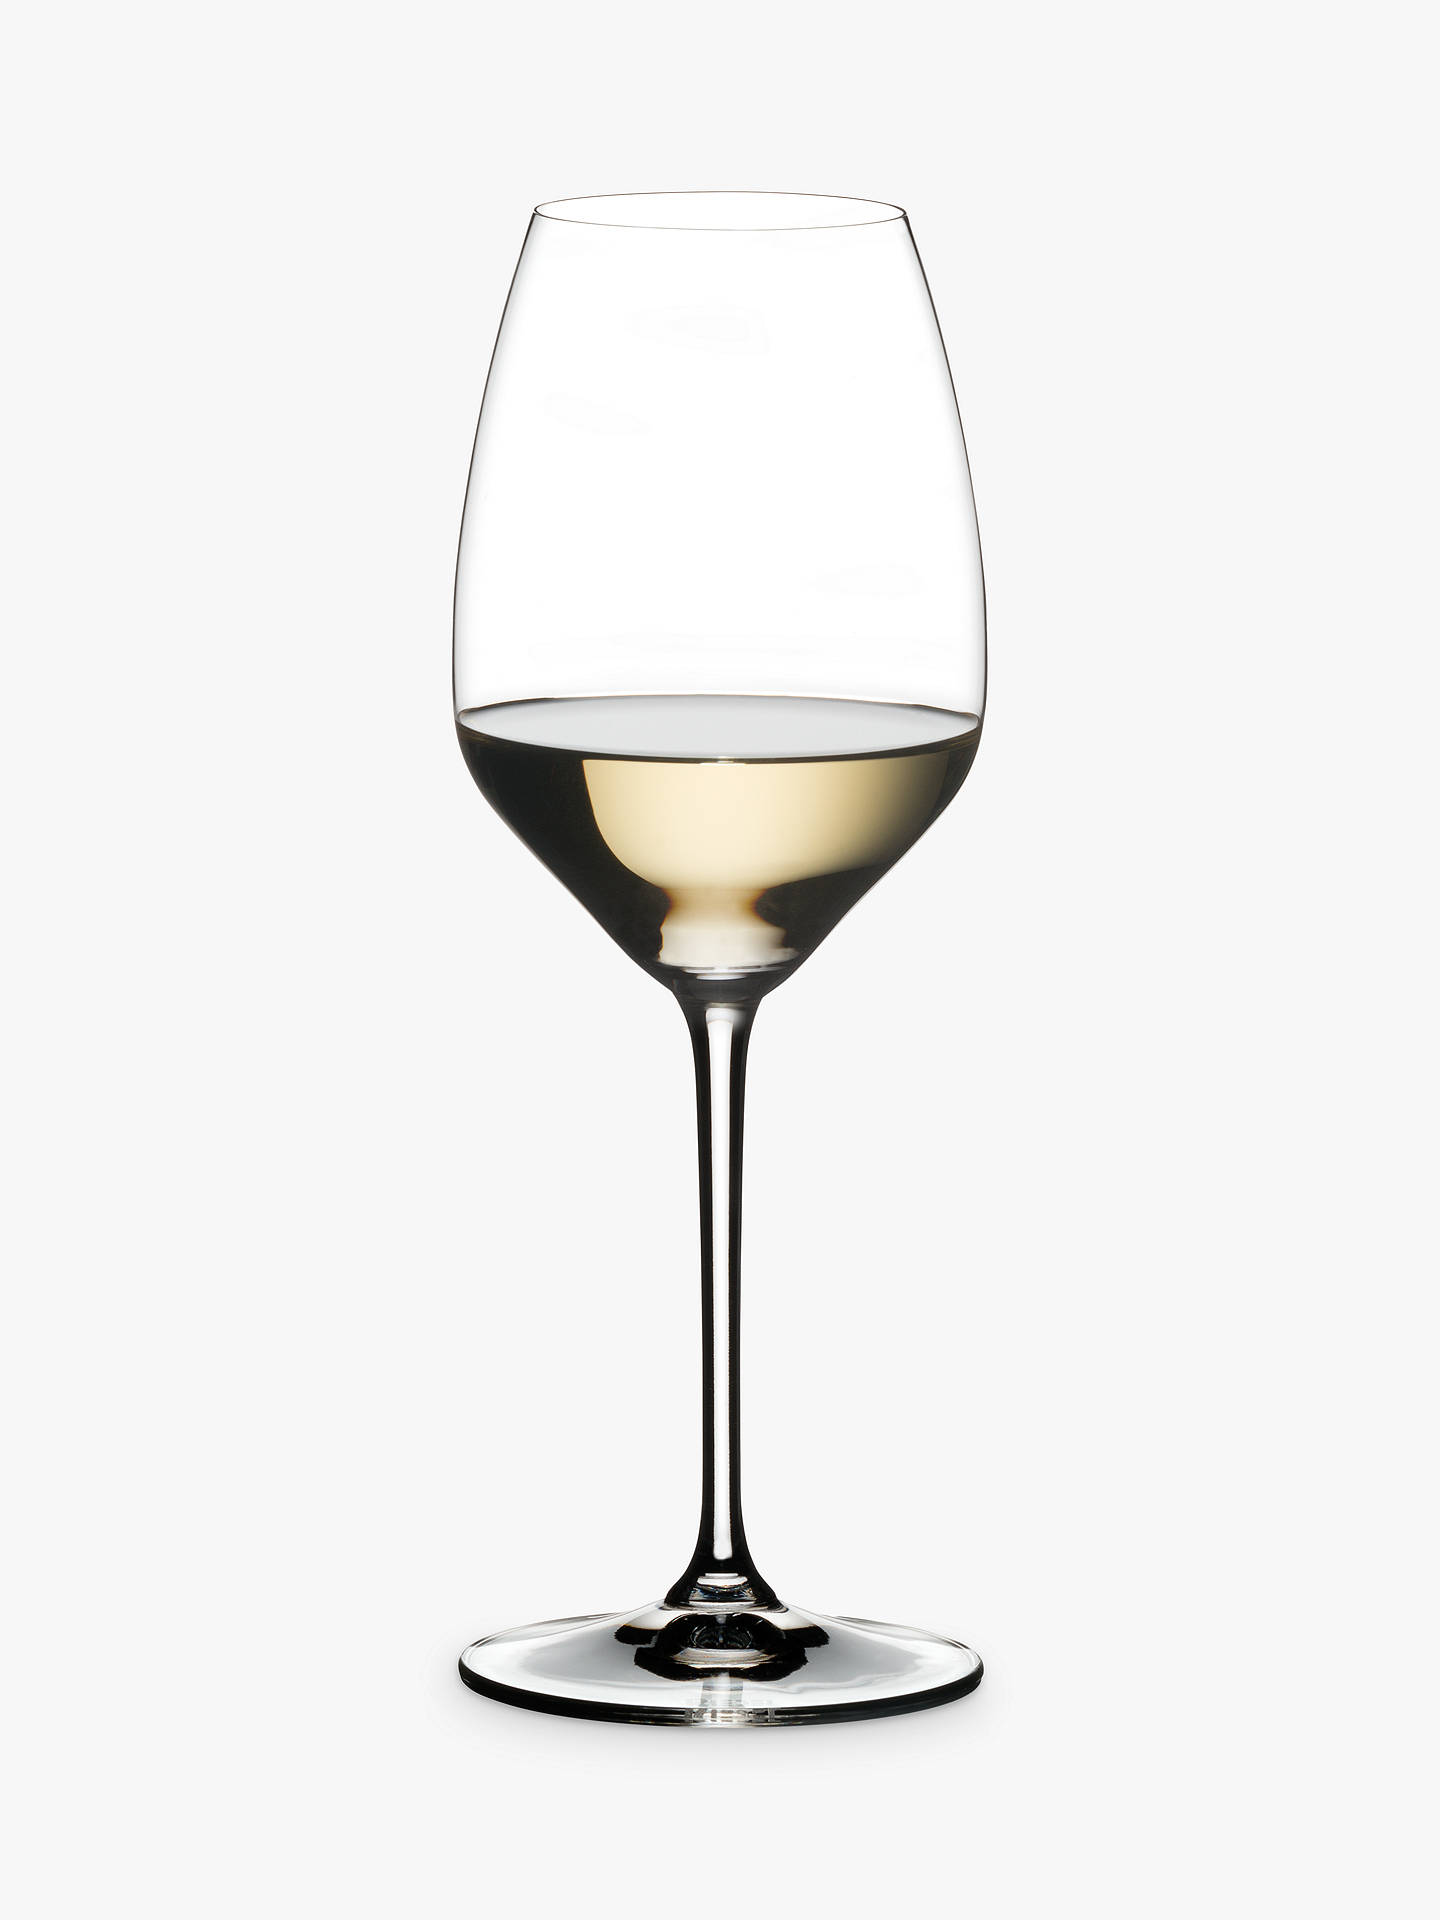 BuyRiedel See Smell Taste Riesling Crystal Wine Glass, Set of 2, 460ml, Clear Online at johnlewis.com